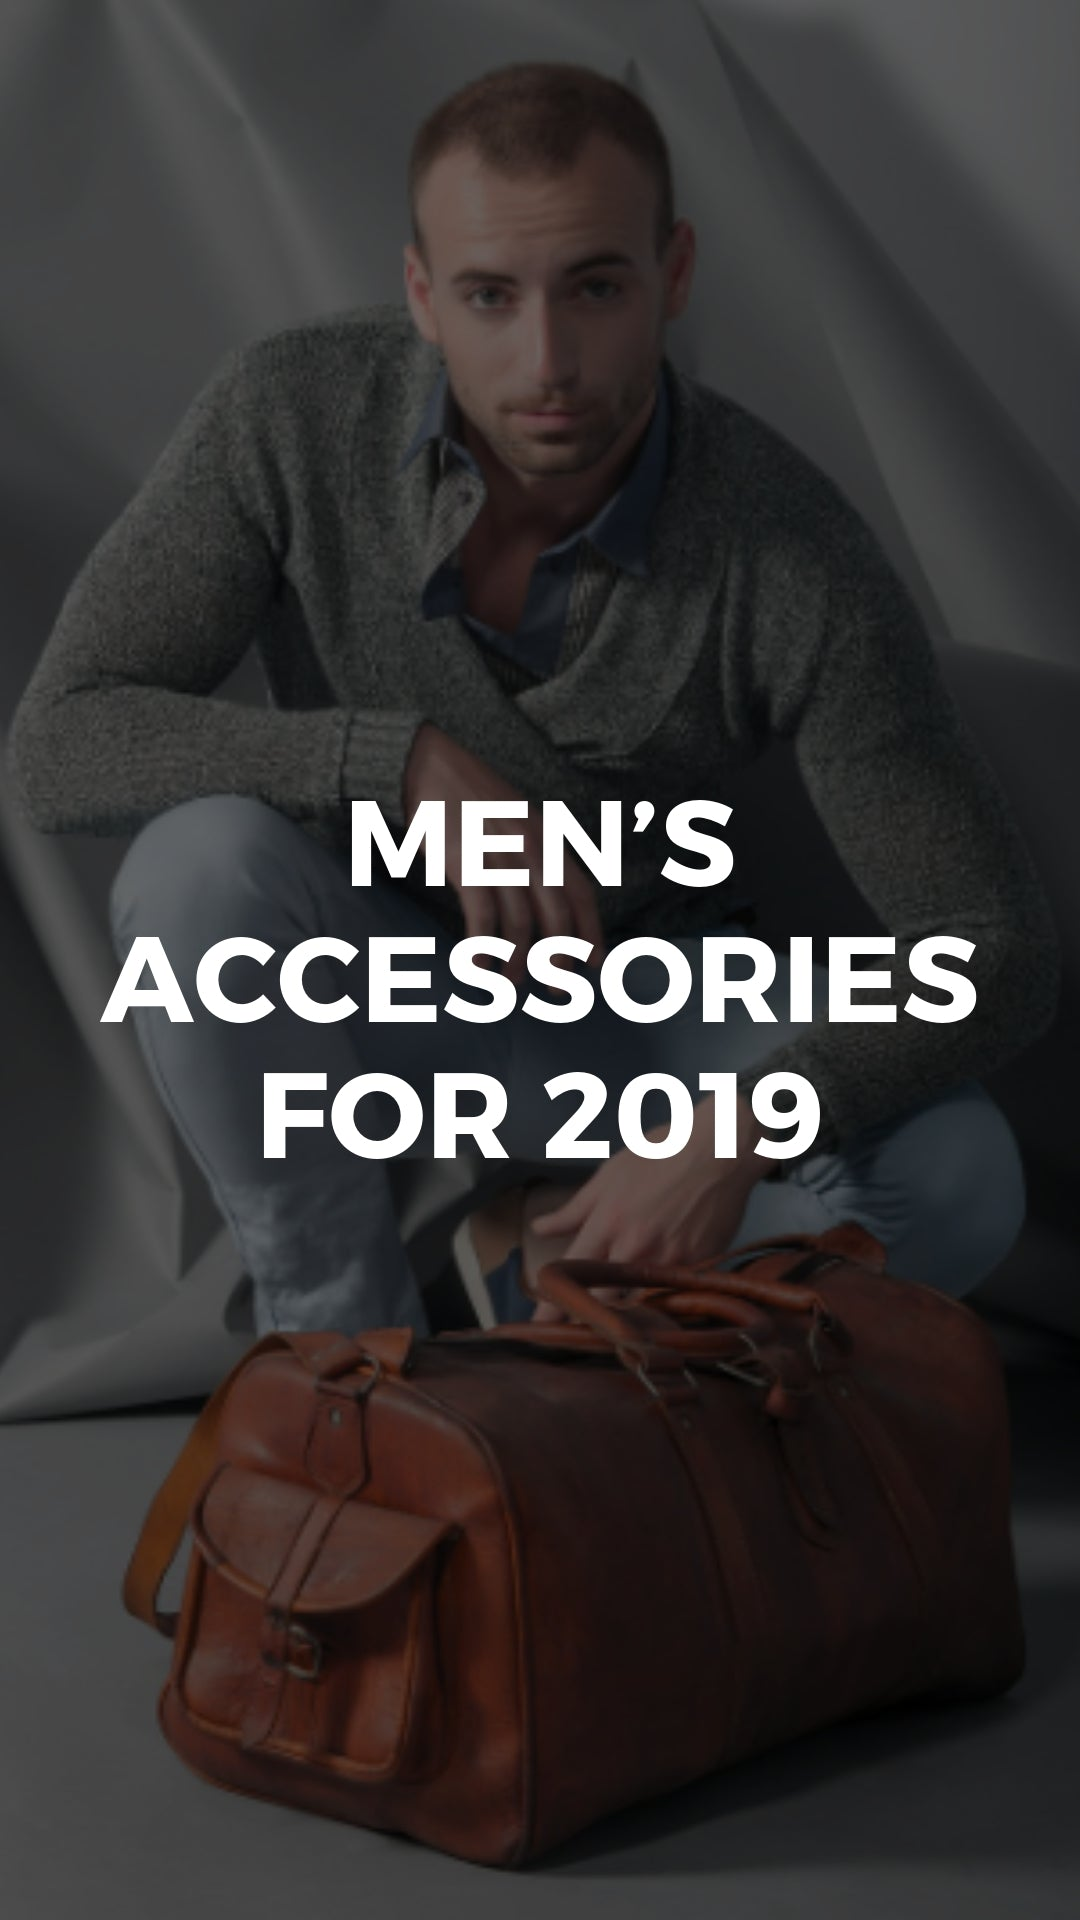 Men's Accessories for 2019: